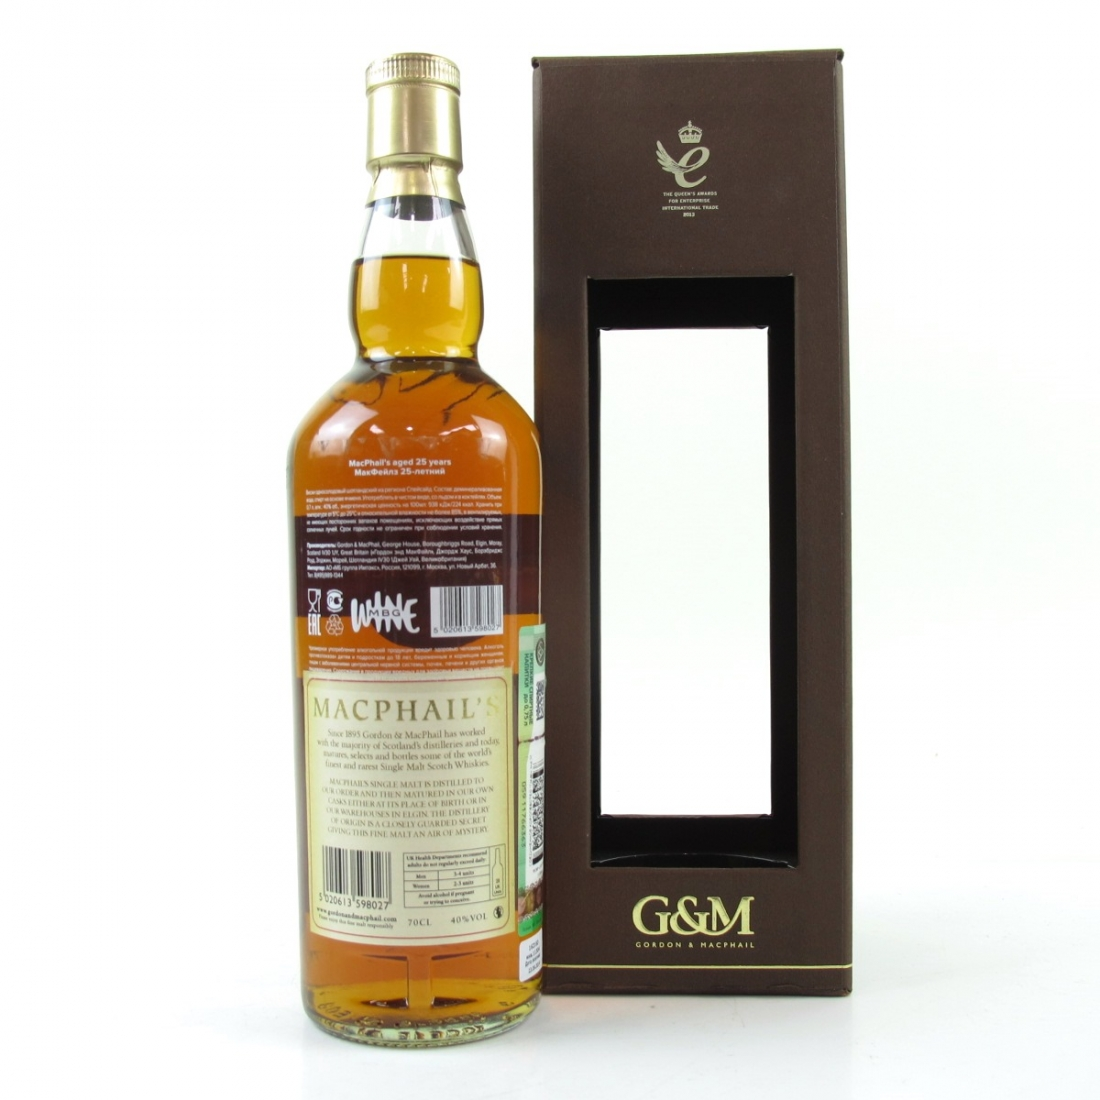 MacPhail's 25 Year Old Single Malt